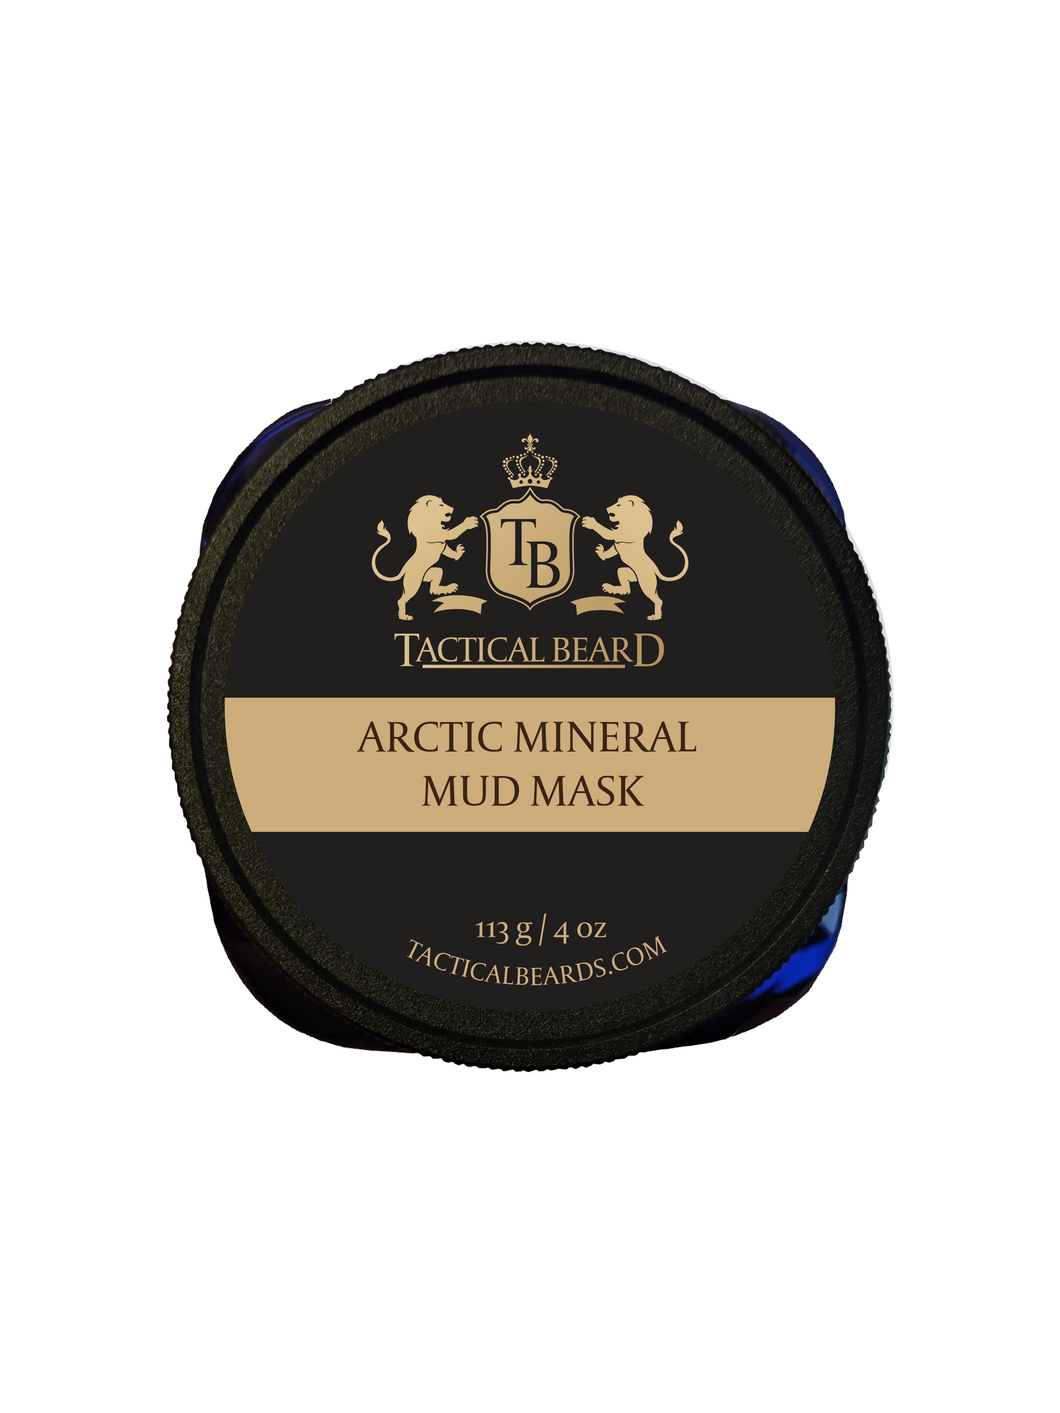 Arctic Mineral Mud Mask